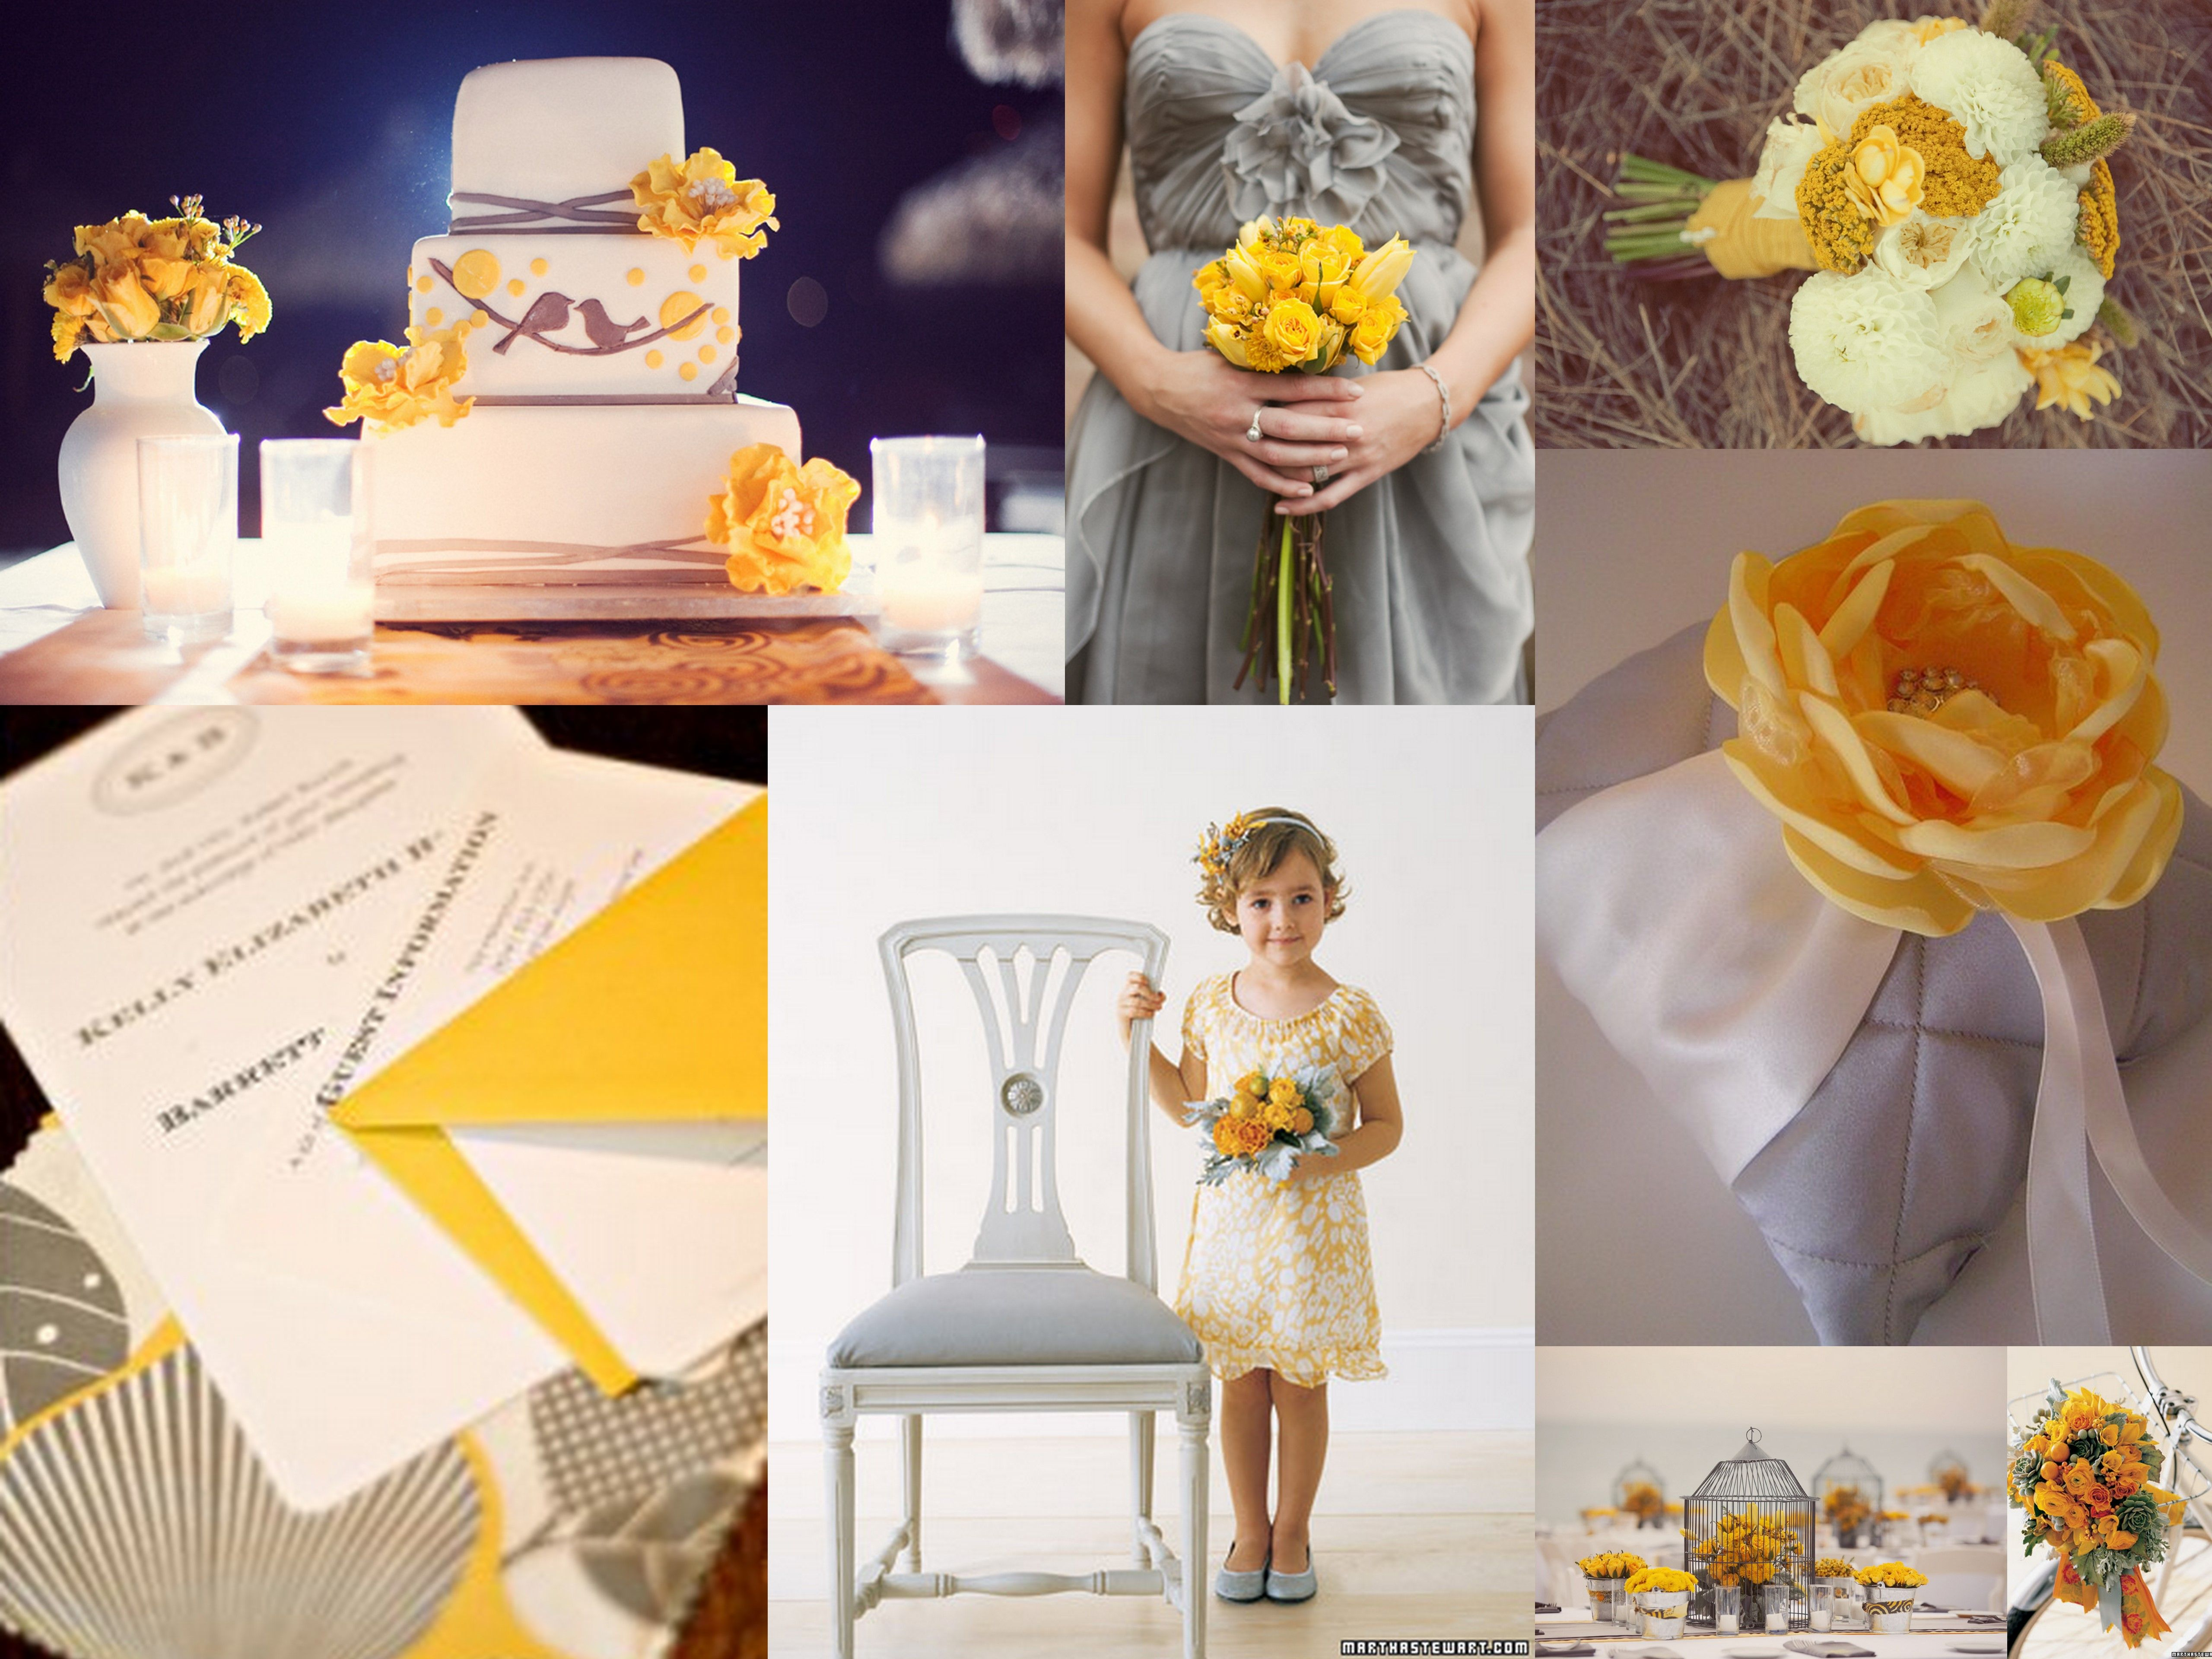 Wedding inspiration by jayna yellow and gray yellow gray wedding inspiration by jayna yellow and gray ombrellifo Image collections